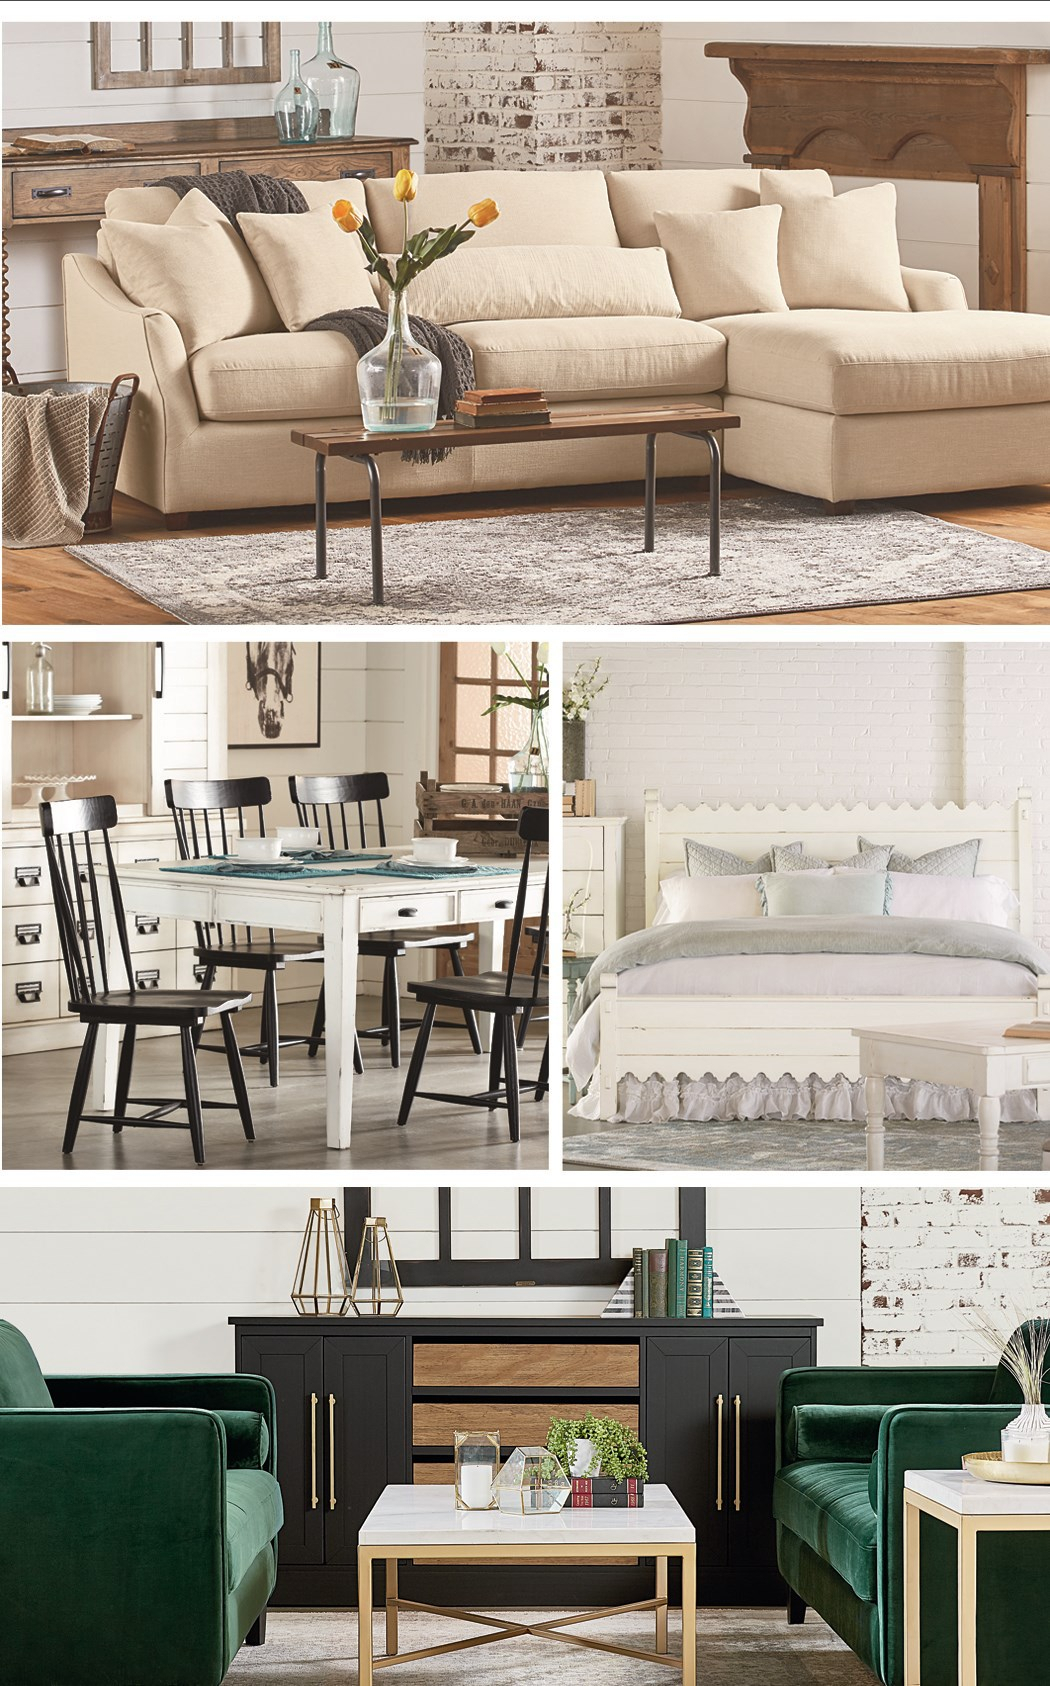 Magnolia Homejoanna Gaines | Fresno, Madera | Fashion Furniture With Regard To Magnolia Home Ravel Linen Sofa Chairs (View 13 of 25)